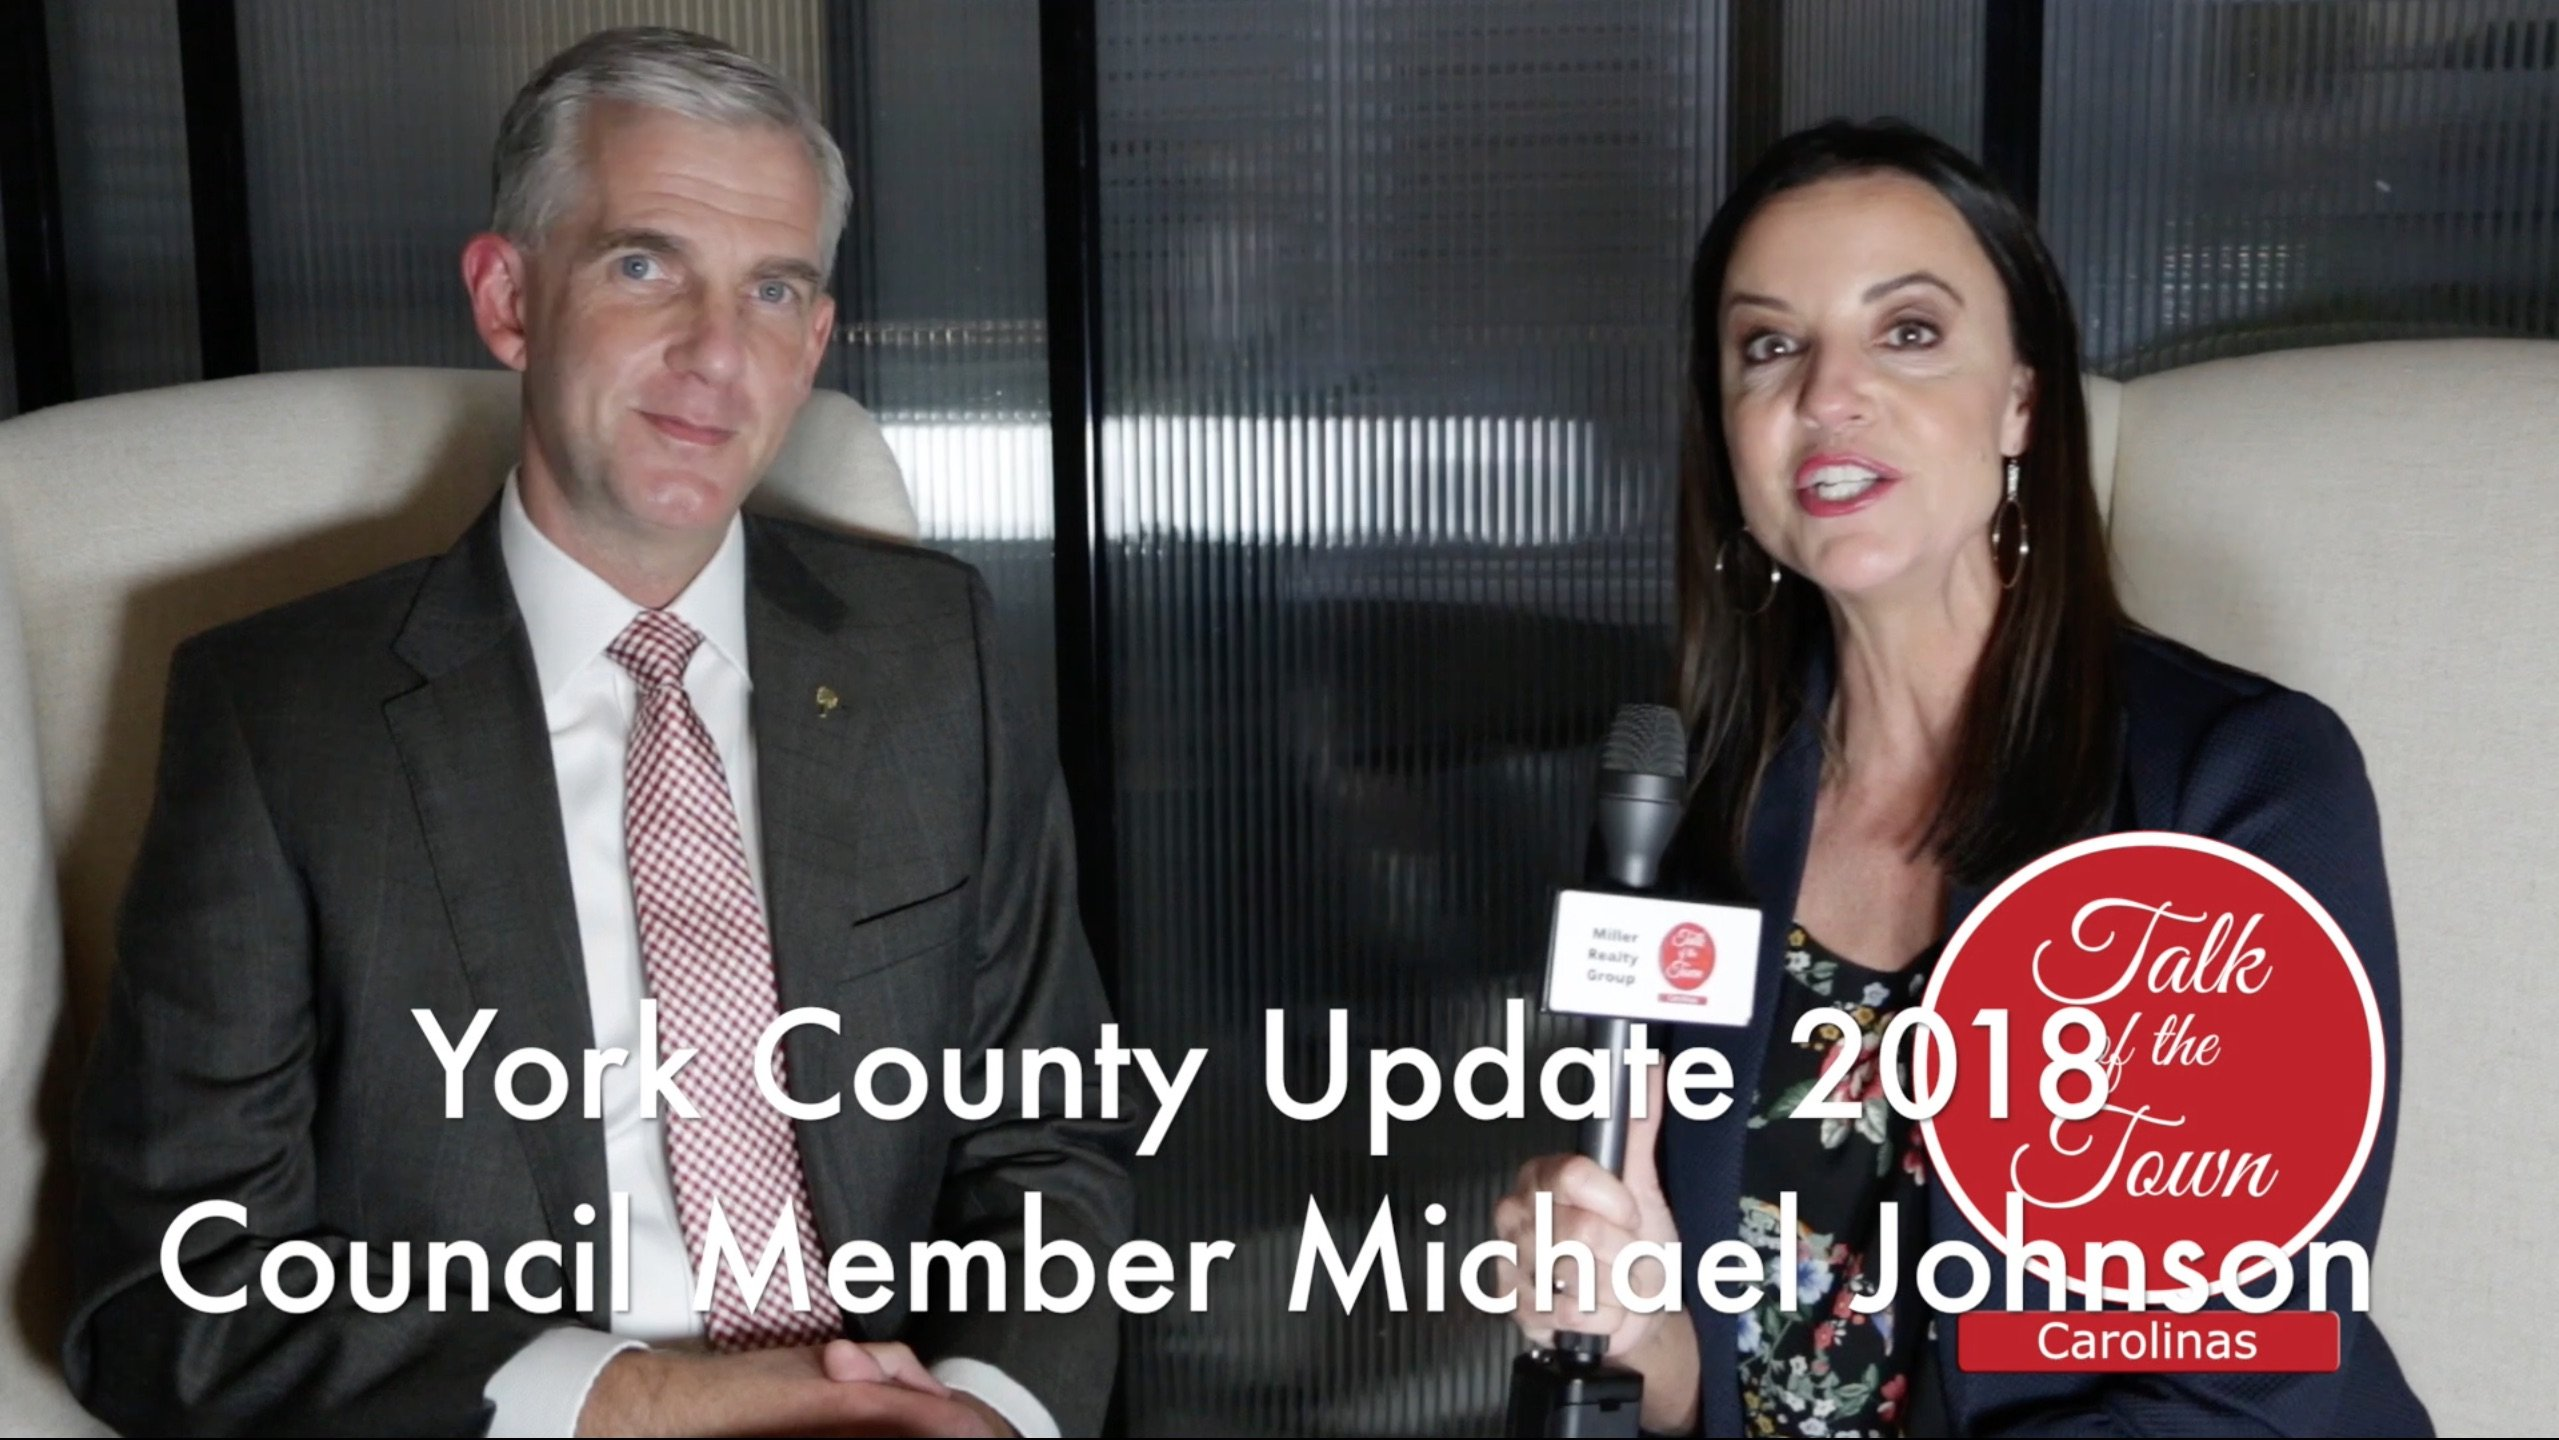 Michael Johnson 2018 Update Talk of the Town